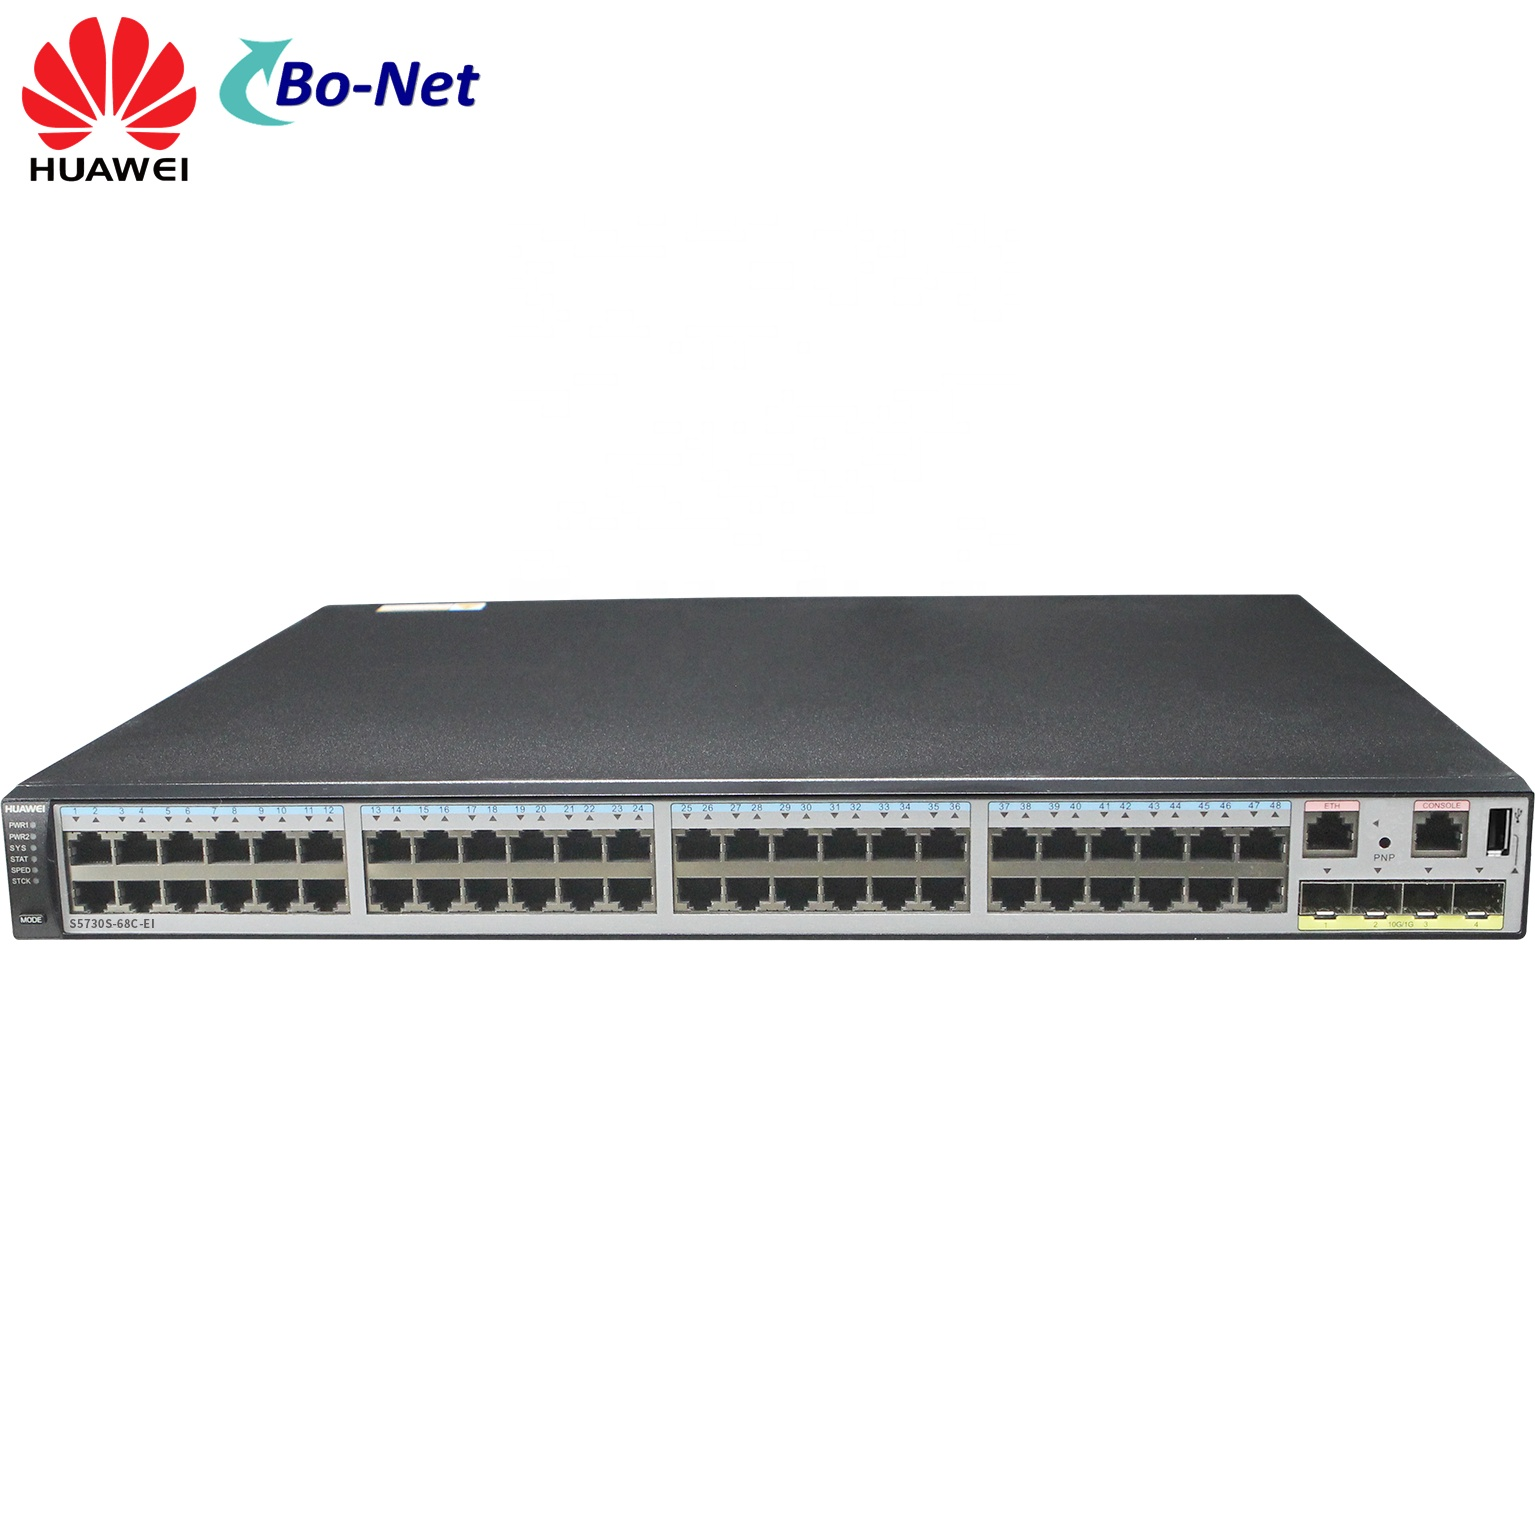 Huawei S5700 Series S5730S-68C-EI-AC 48x 10/100/1000m <strong>Port</strong> Ethernet 4x 10GE SFP+ Switch